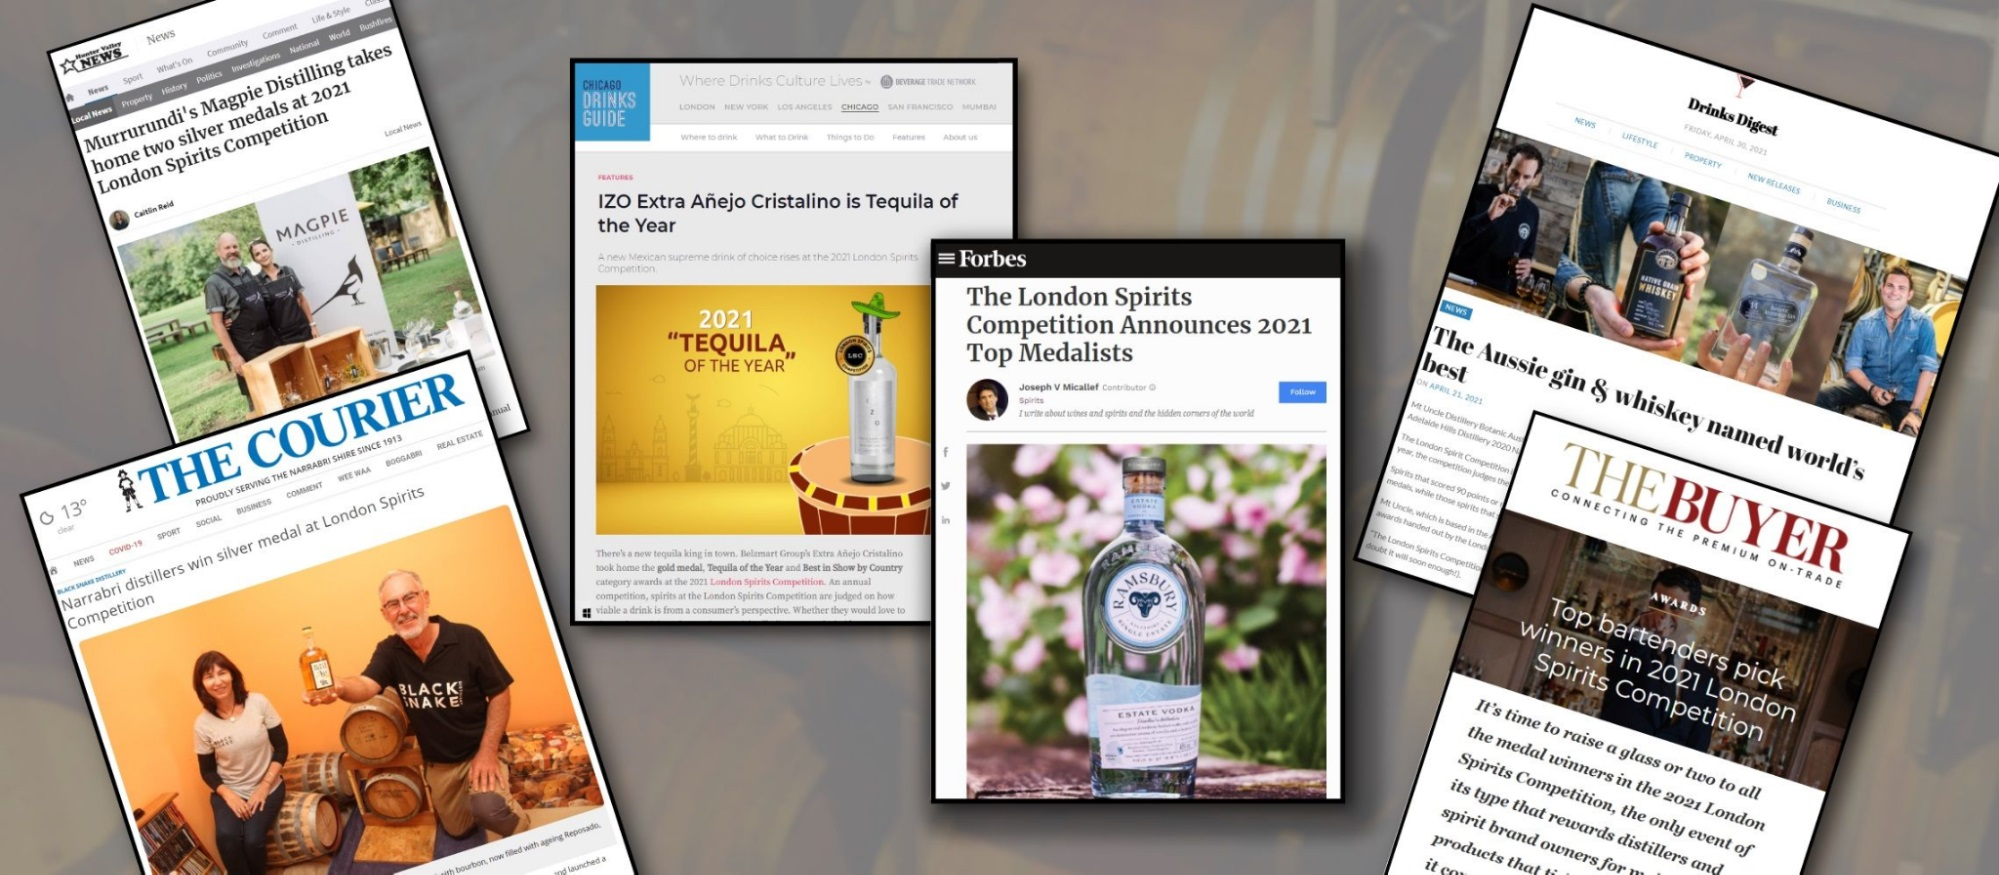 Check the international global coverage of London Spirits Competition